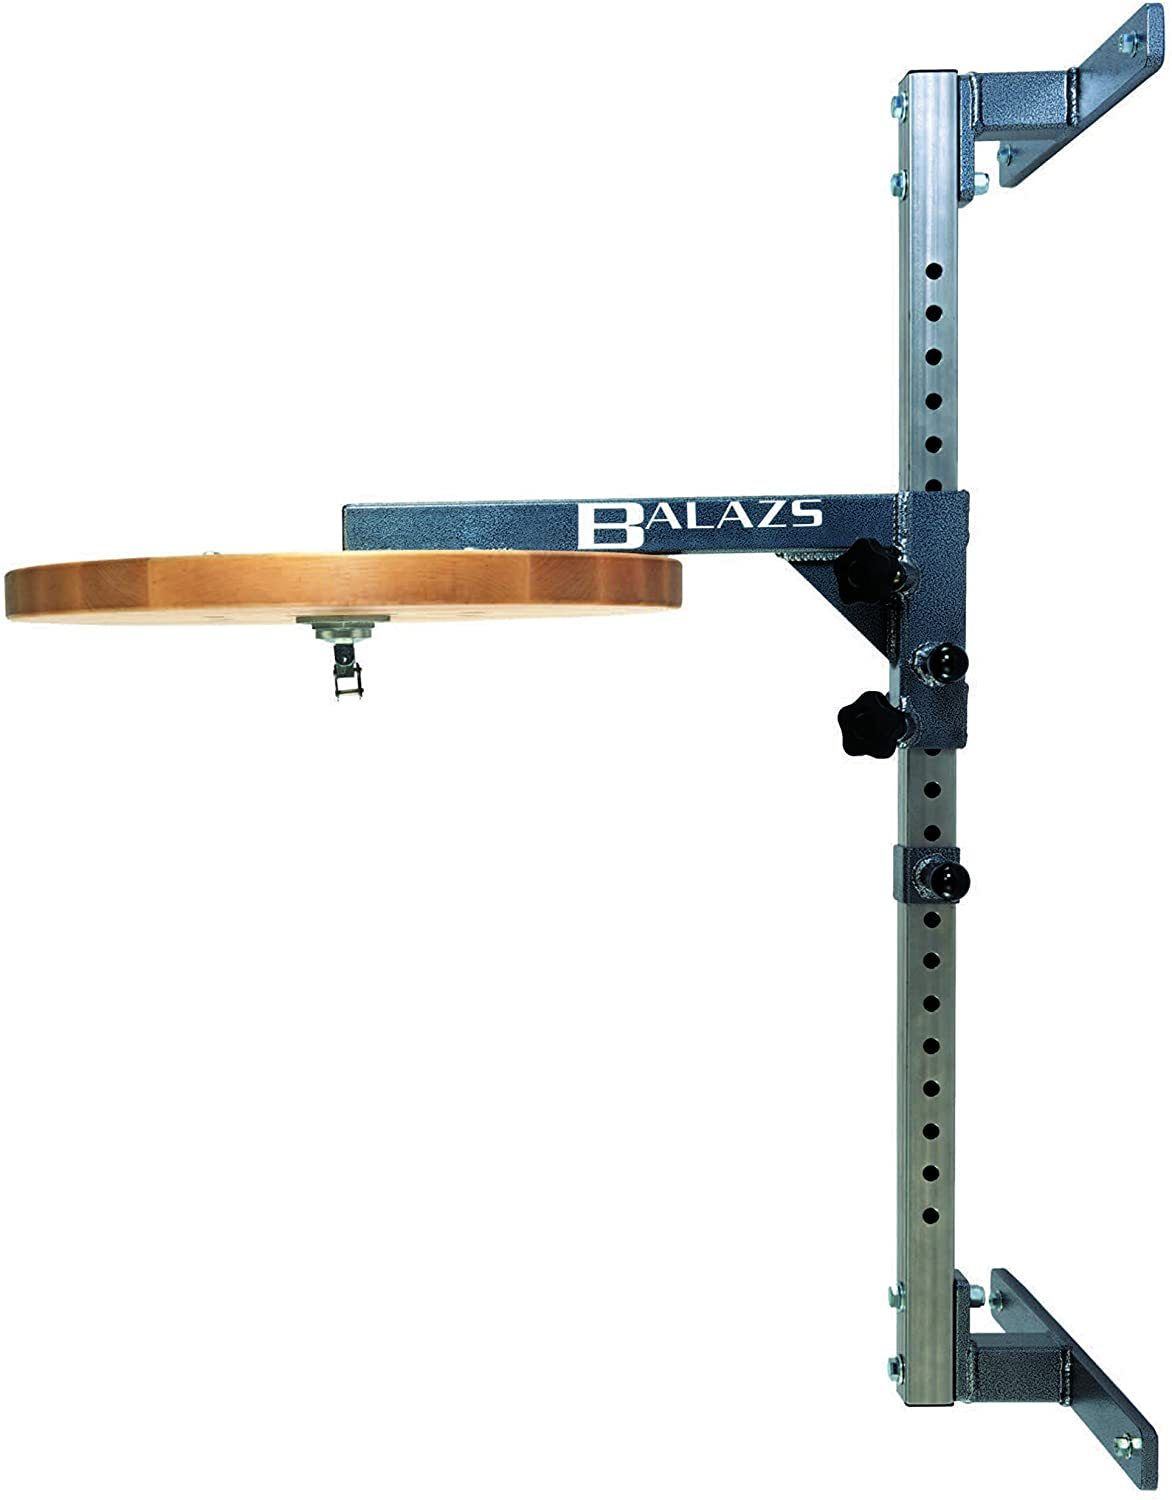 24 inch Adjustable Speed Bag Platform